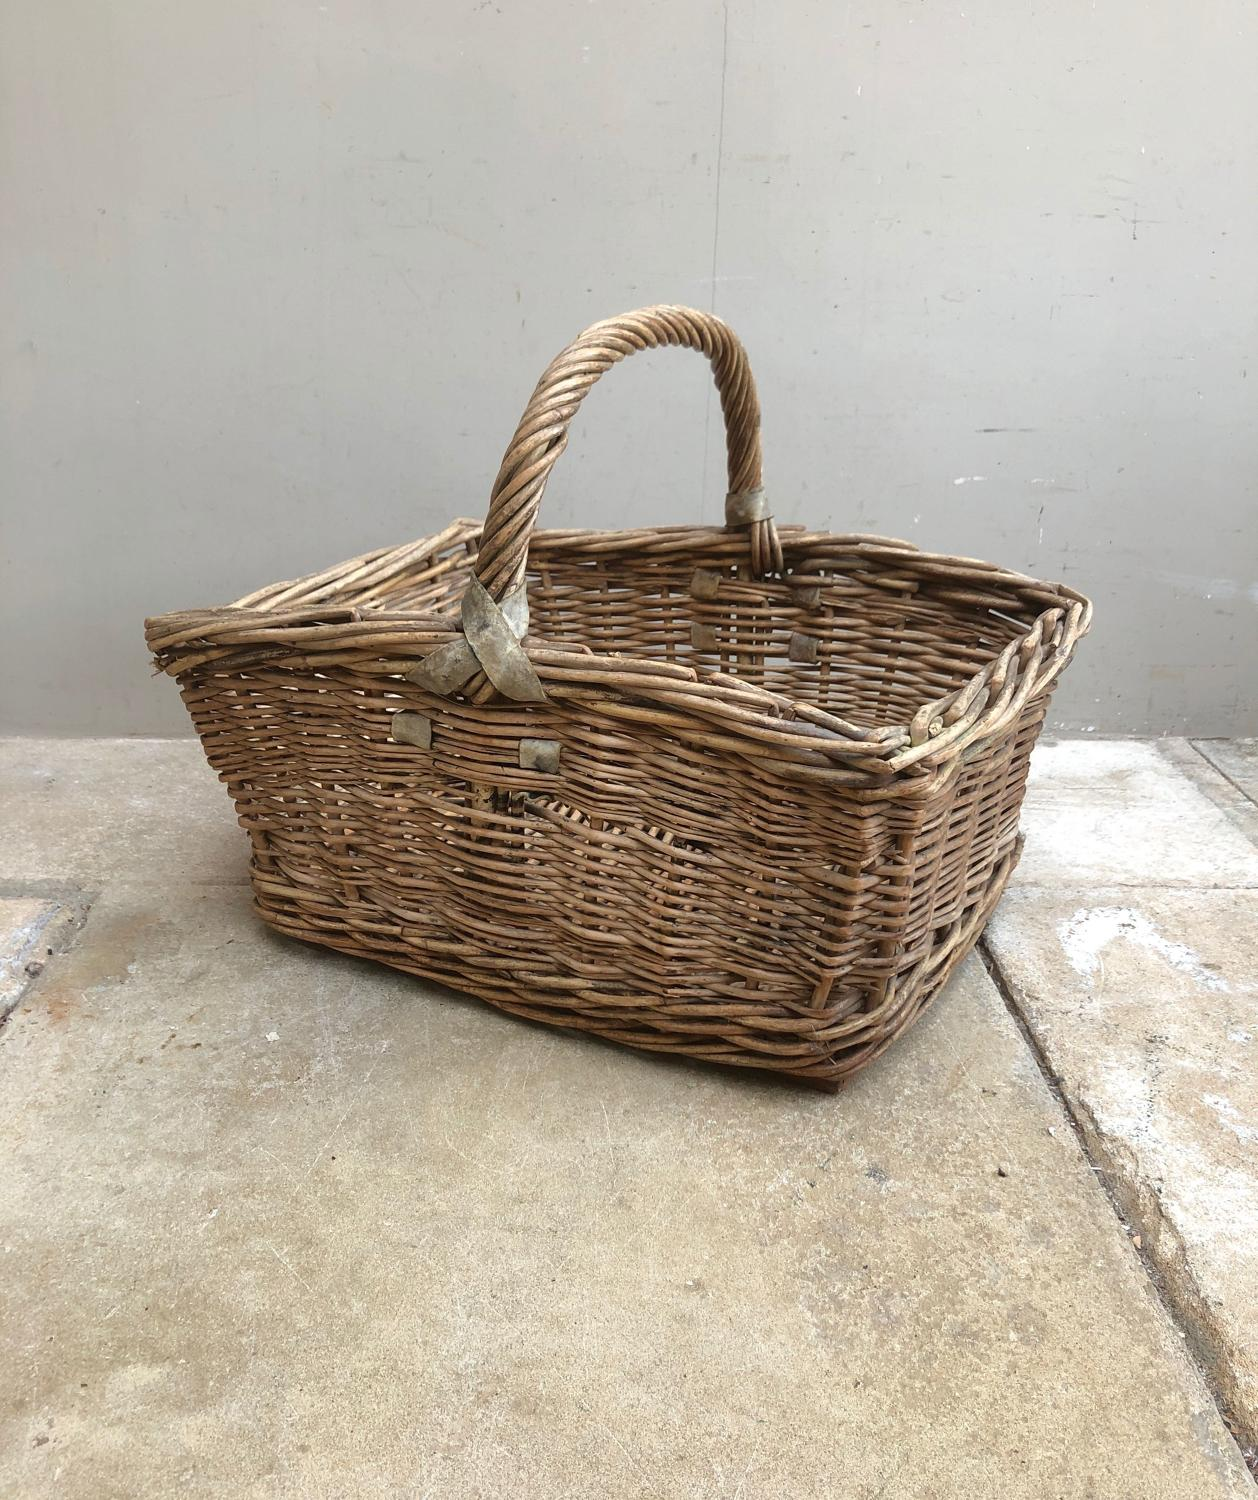 Early 20th Century Leather Strapped Bakers Basket